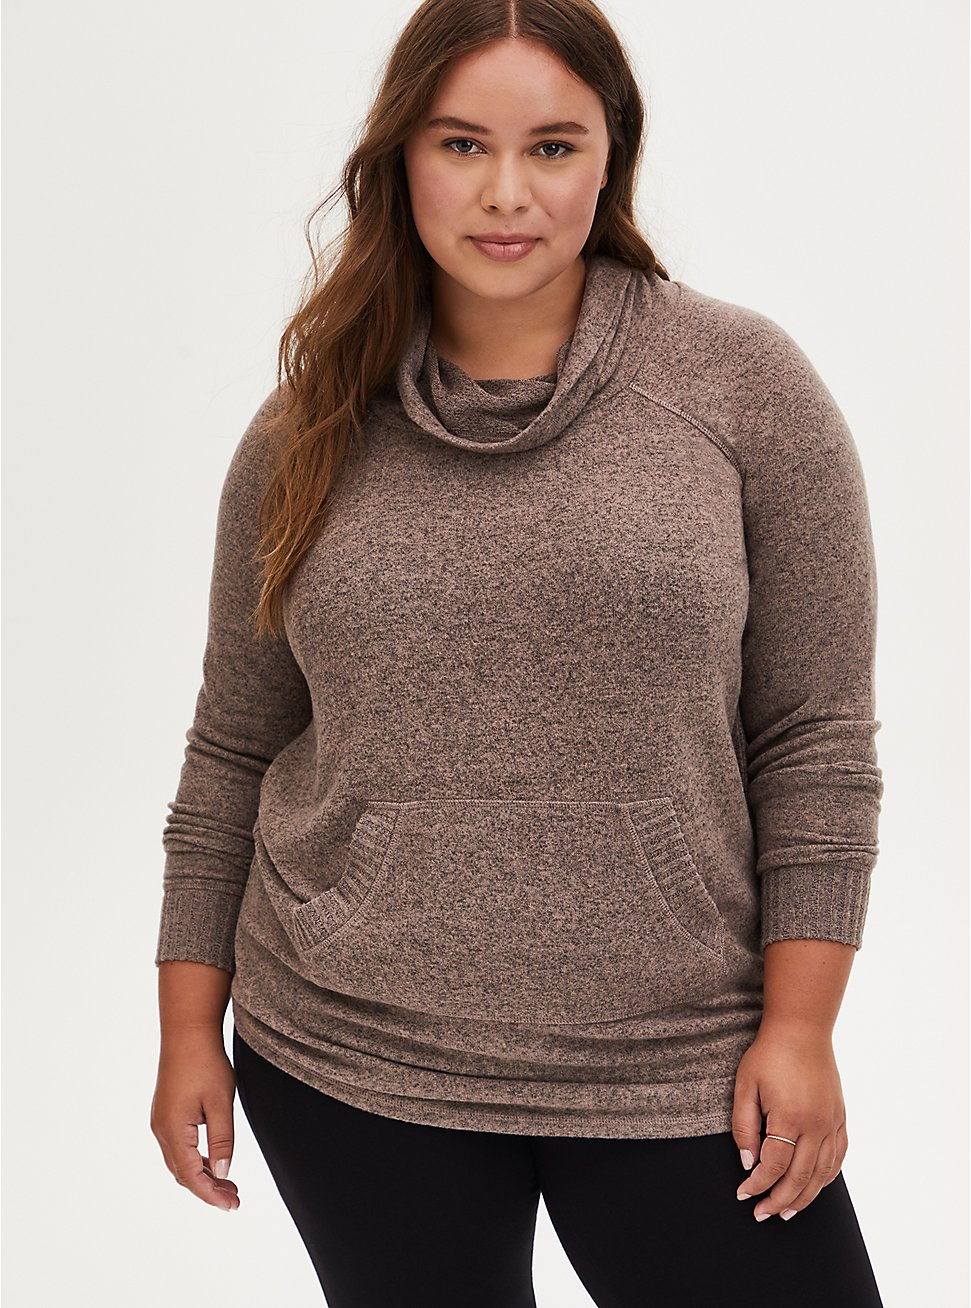 Super Soft Plush Walnut Cowl Neck Tunic Sweatshirt, , hi-res